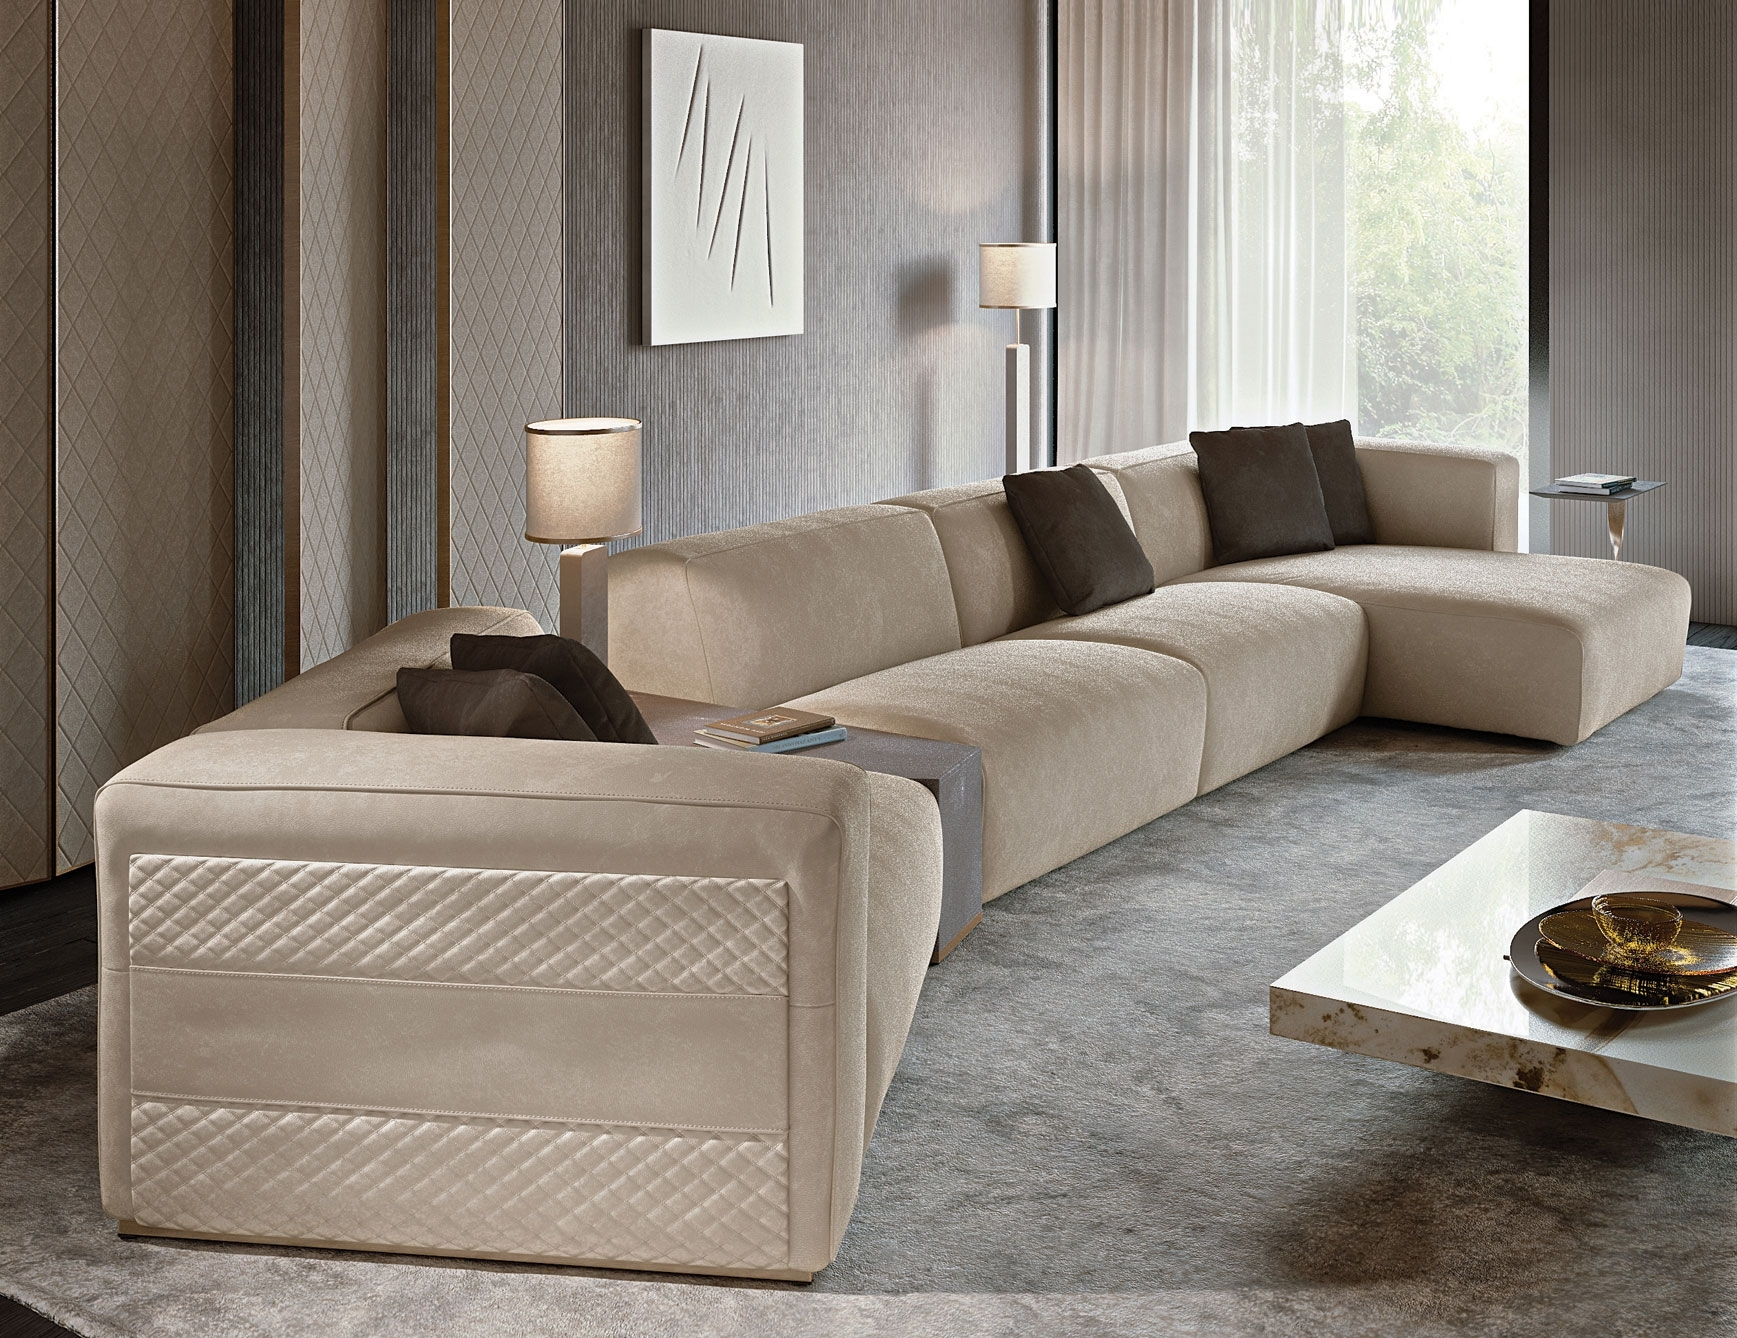 leather sofa furniture stores nyc vintage metal glider 10 best collection of high end sofas | ideas